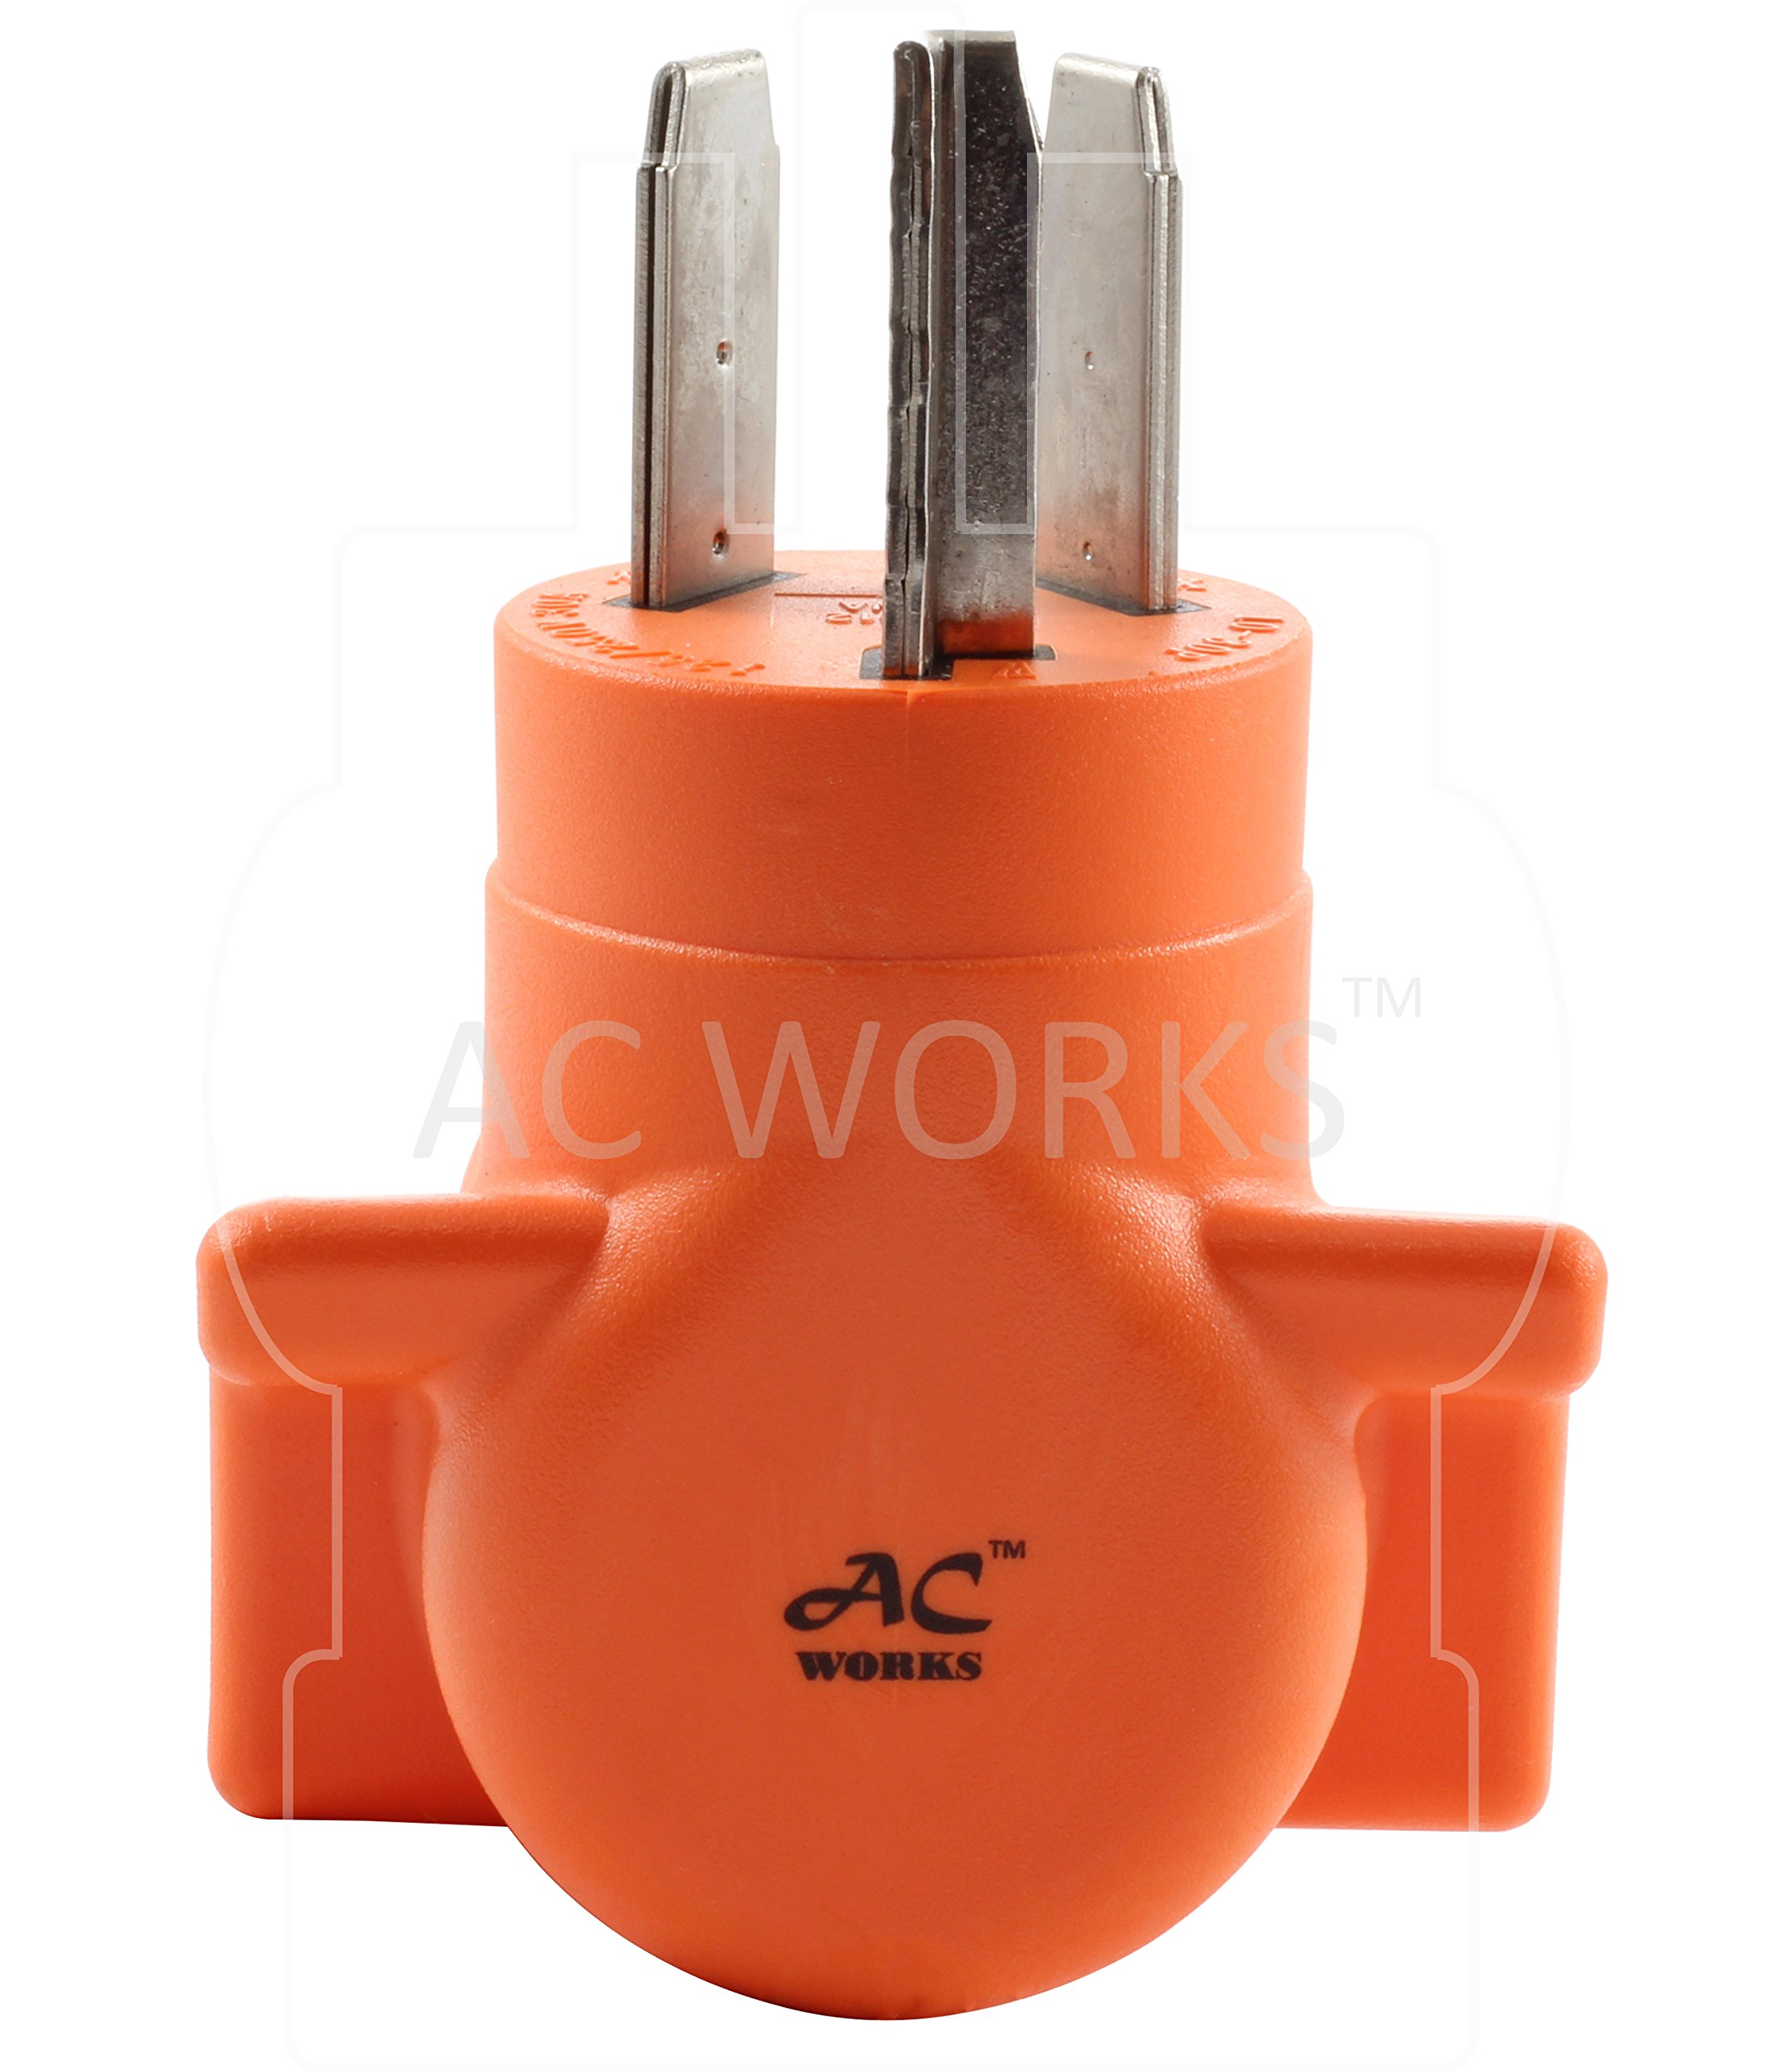 AC WORKS [WD1030650] NEMA 10-30 3-Prong Dryer Plug to 6-50 Welder Adapter by AC WORKS (Image #7)